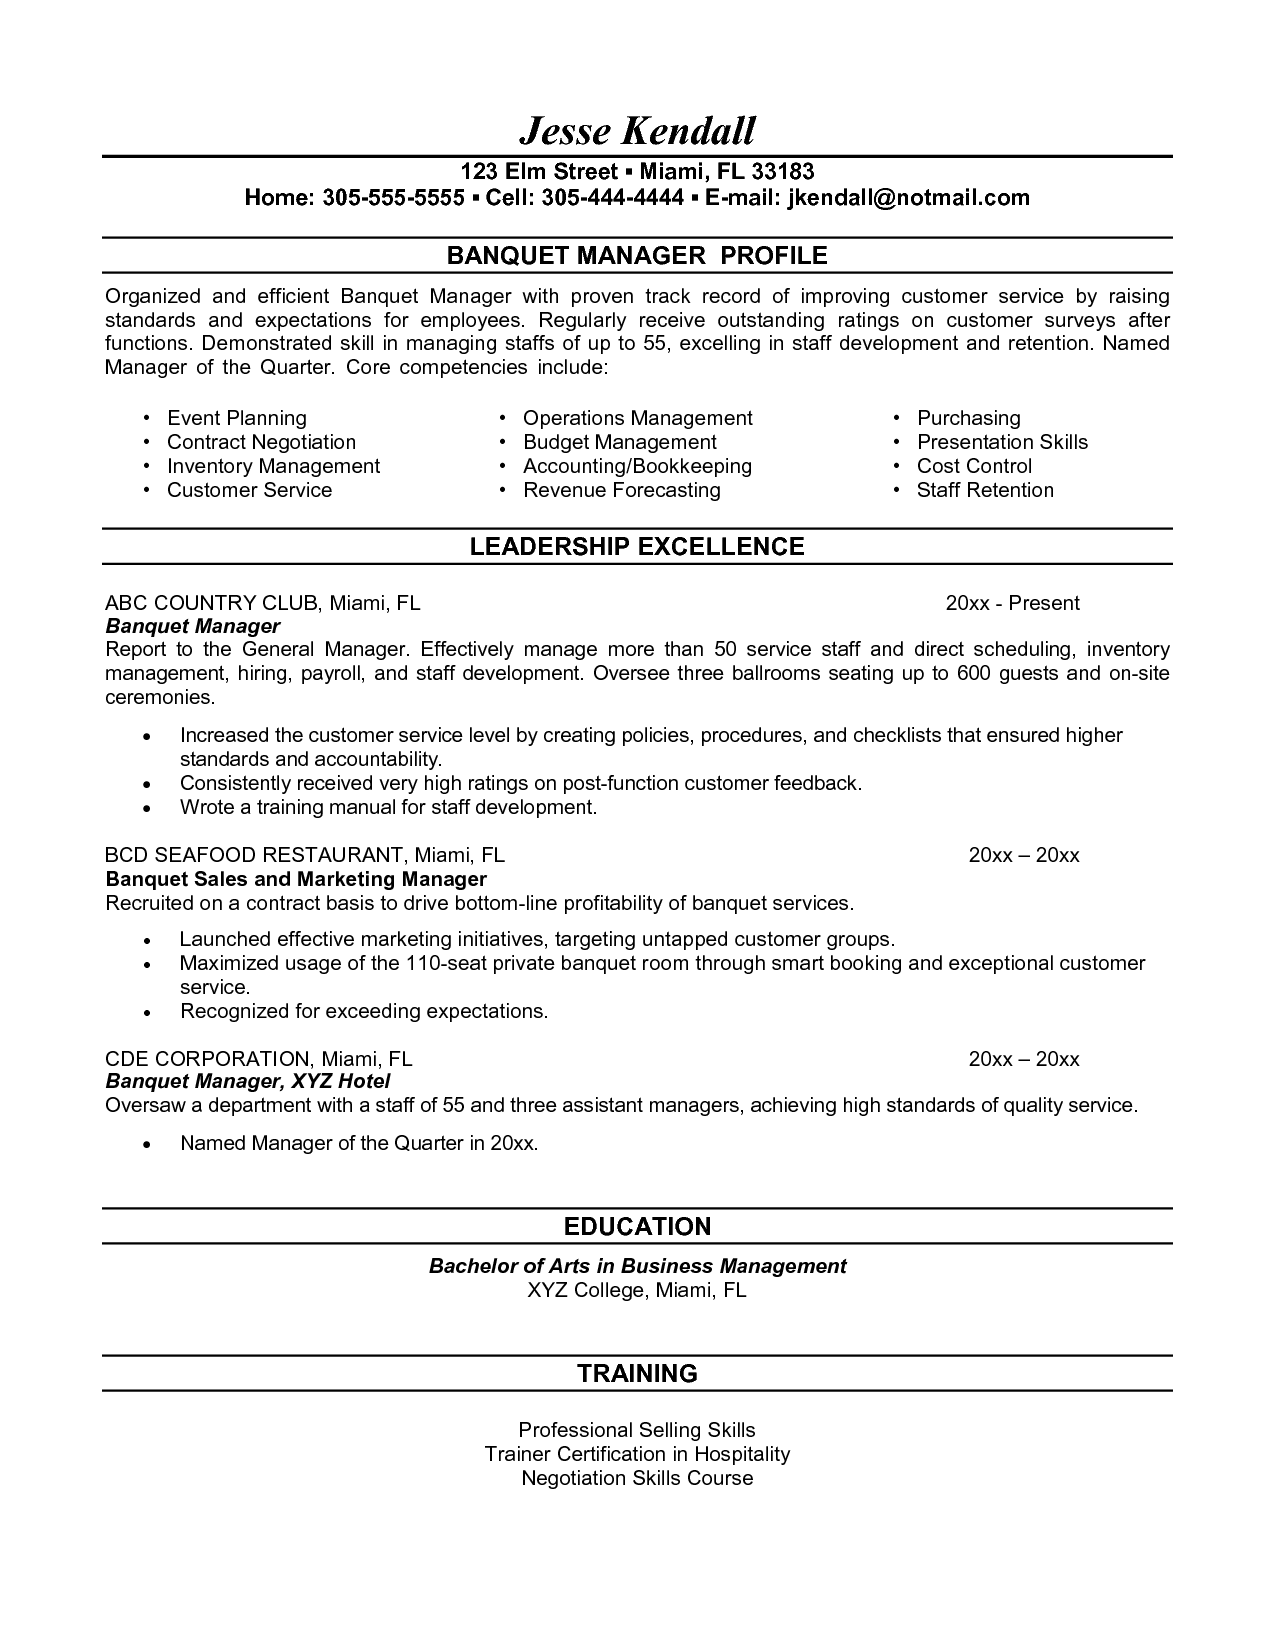 Examples Of Teacher Resumes Special Education Teacher Resume  School  Pinterest  Special